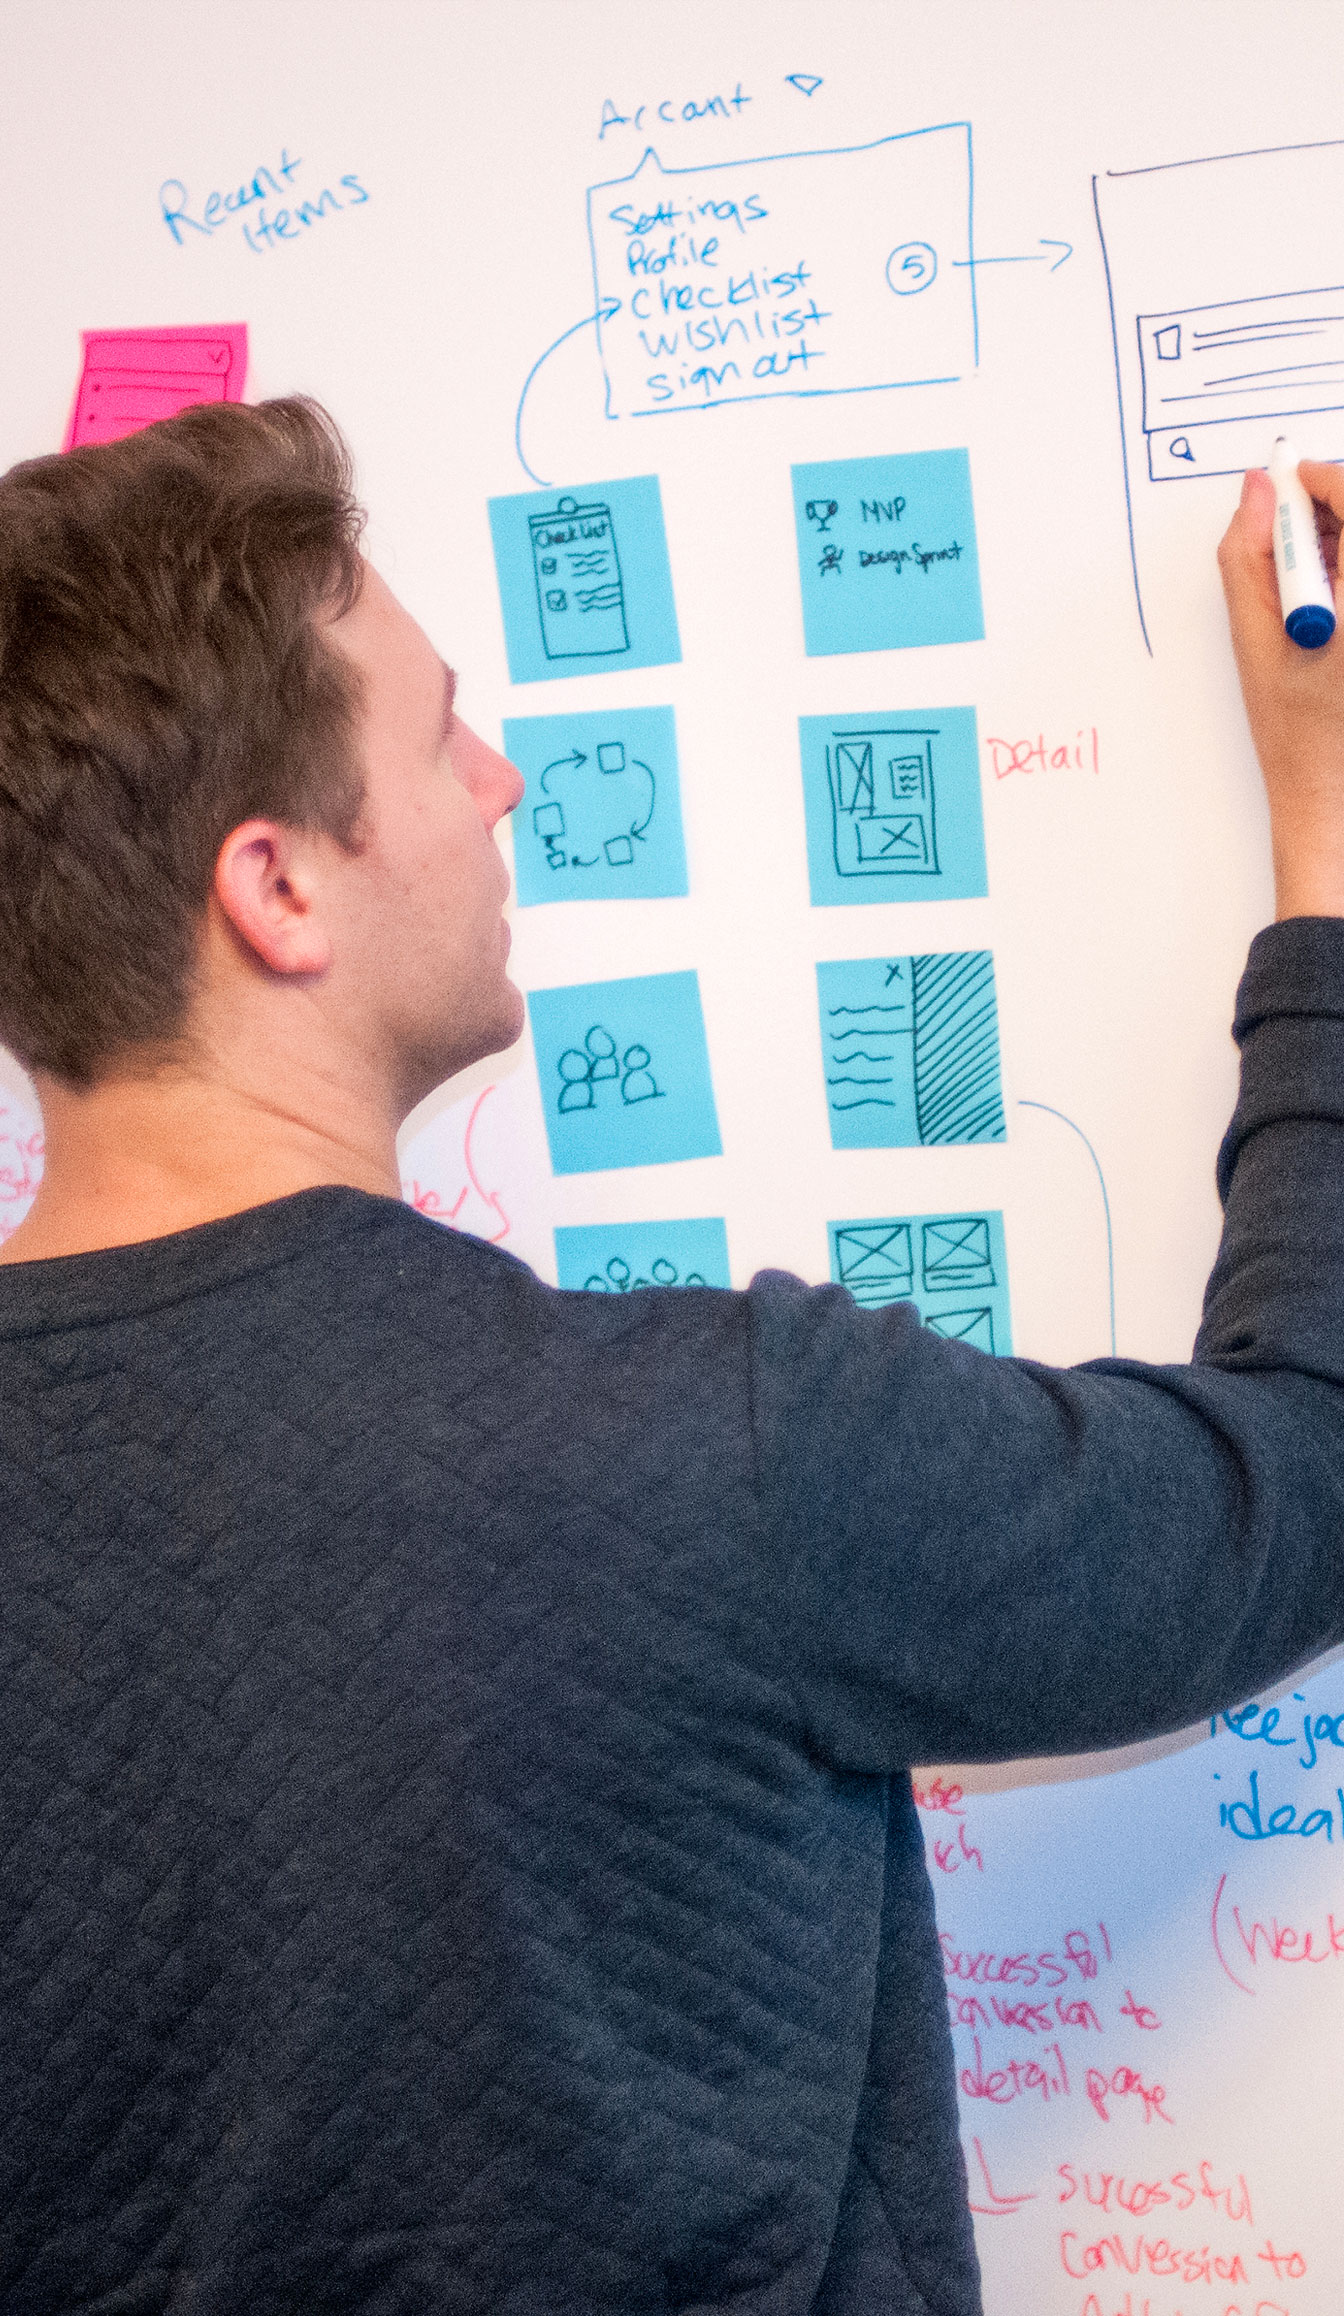 Designer planning design sprint with postits and a whiteboard